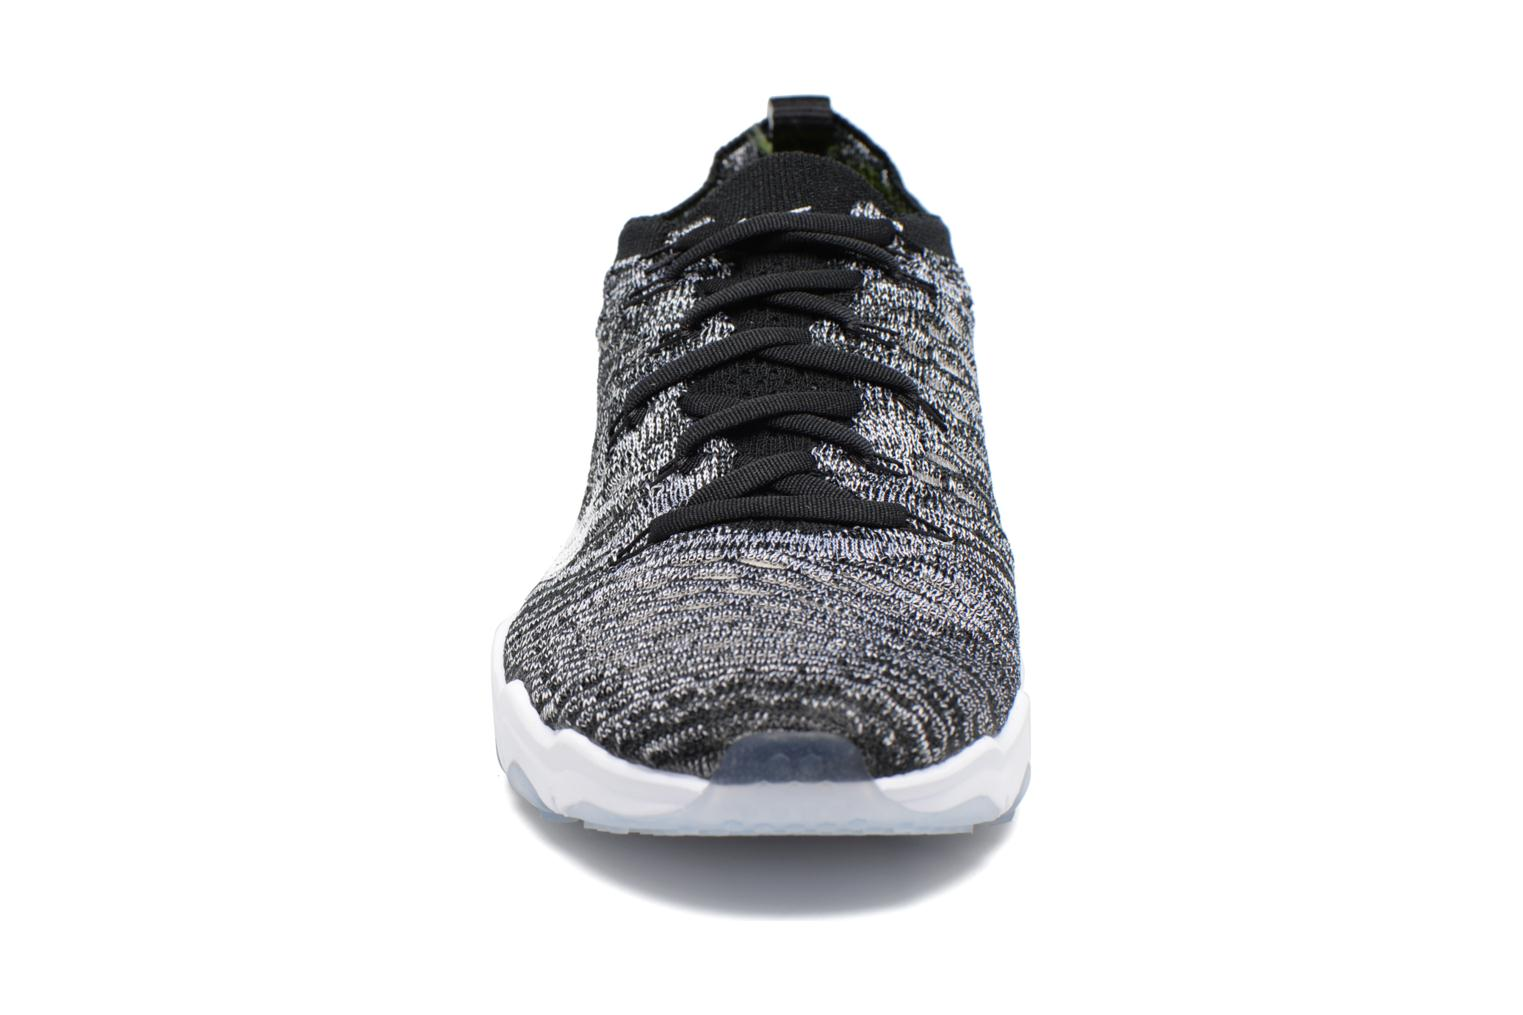 Chaussures de sport Nike W Air Zoom Fearless Flyknit Gris vue portées chaussures